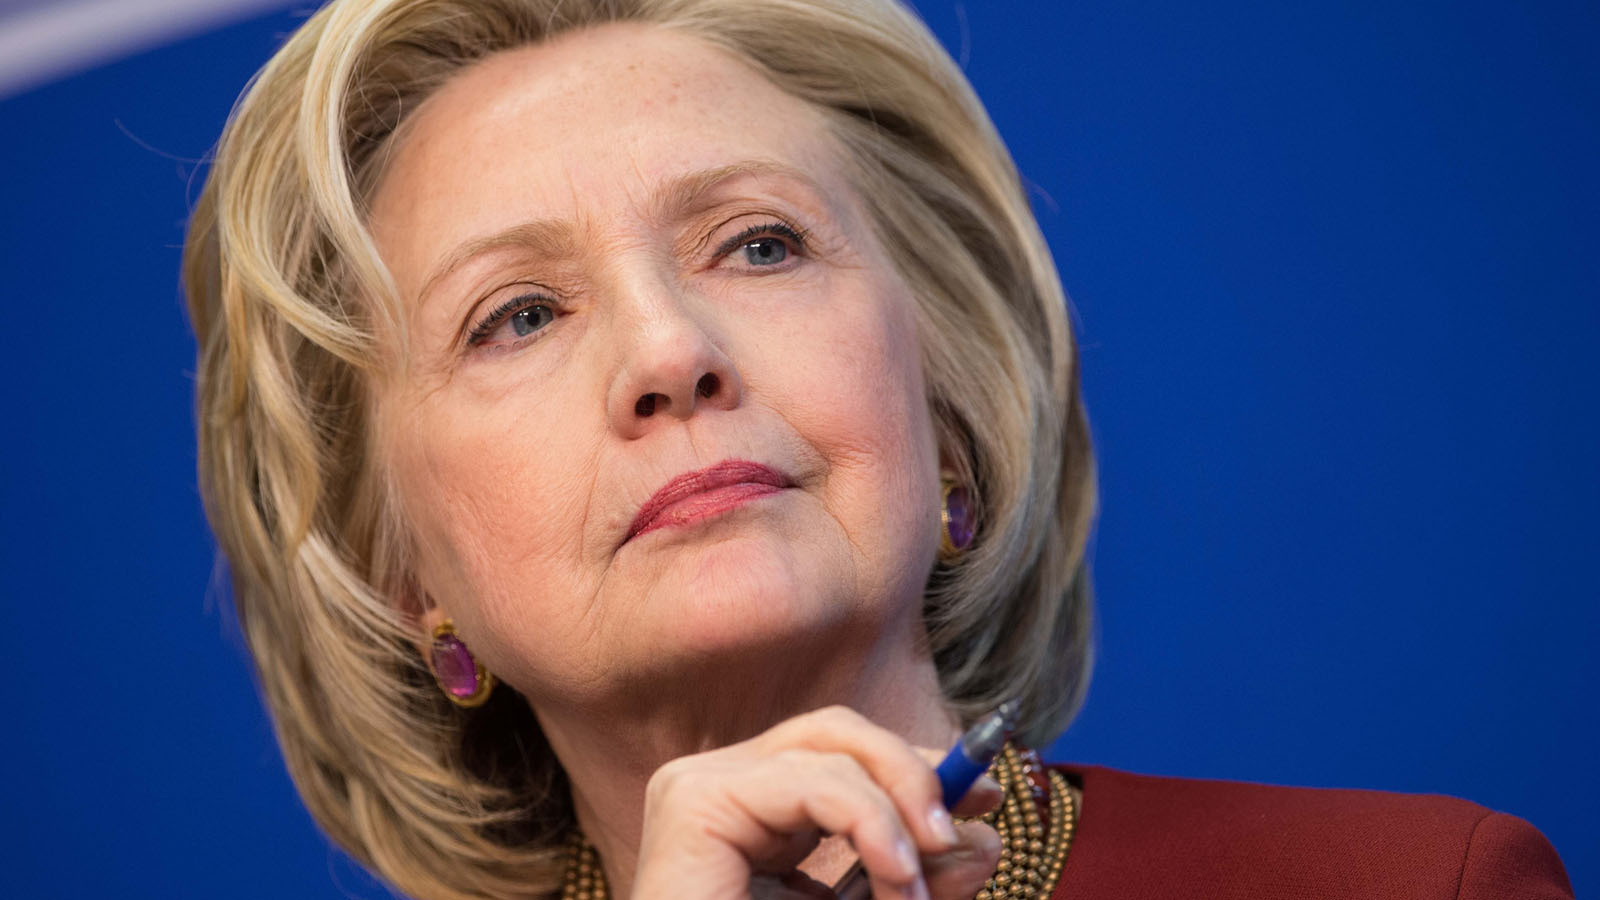 Hillary Clinton enters 2016 race: 'Everyday Americans need ... Hilary